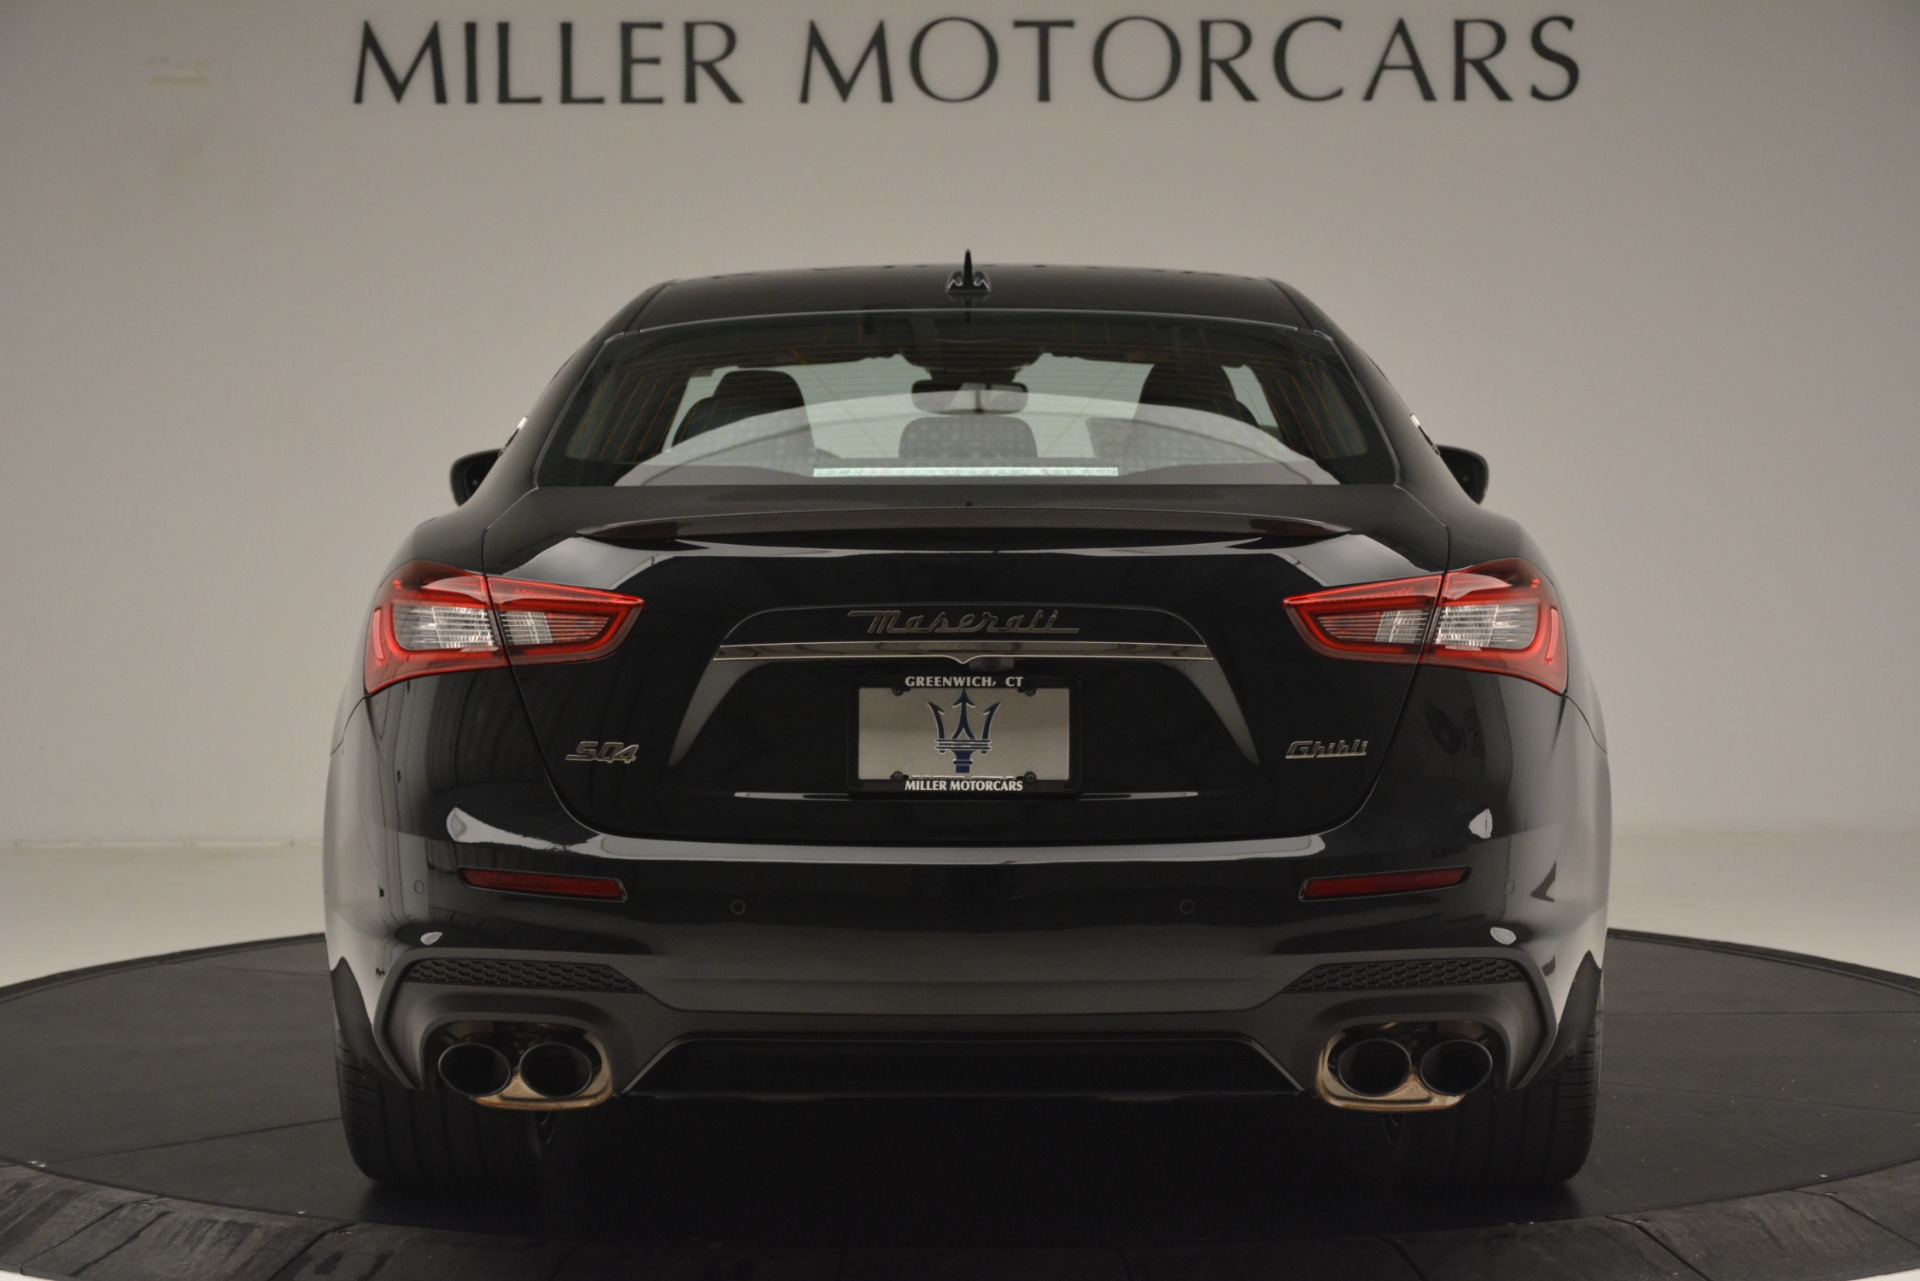 New 2019 Maserati Ghibli S Q4 GranSport For Sale In Westport, CT 2924_p6